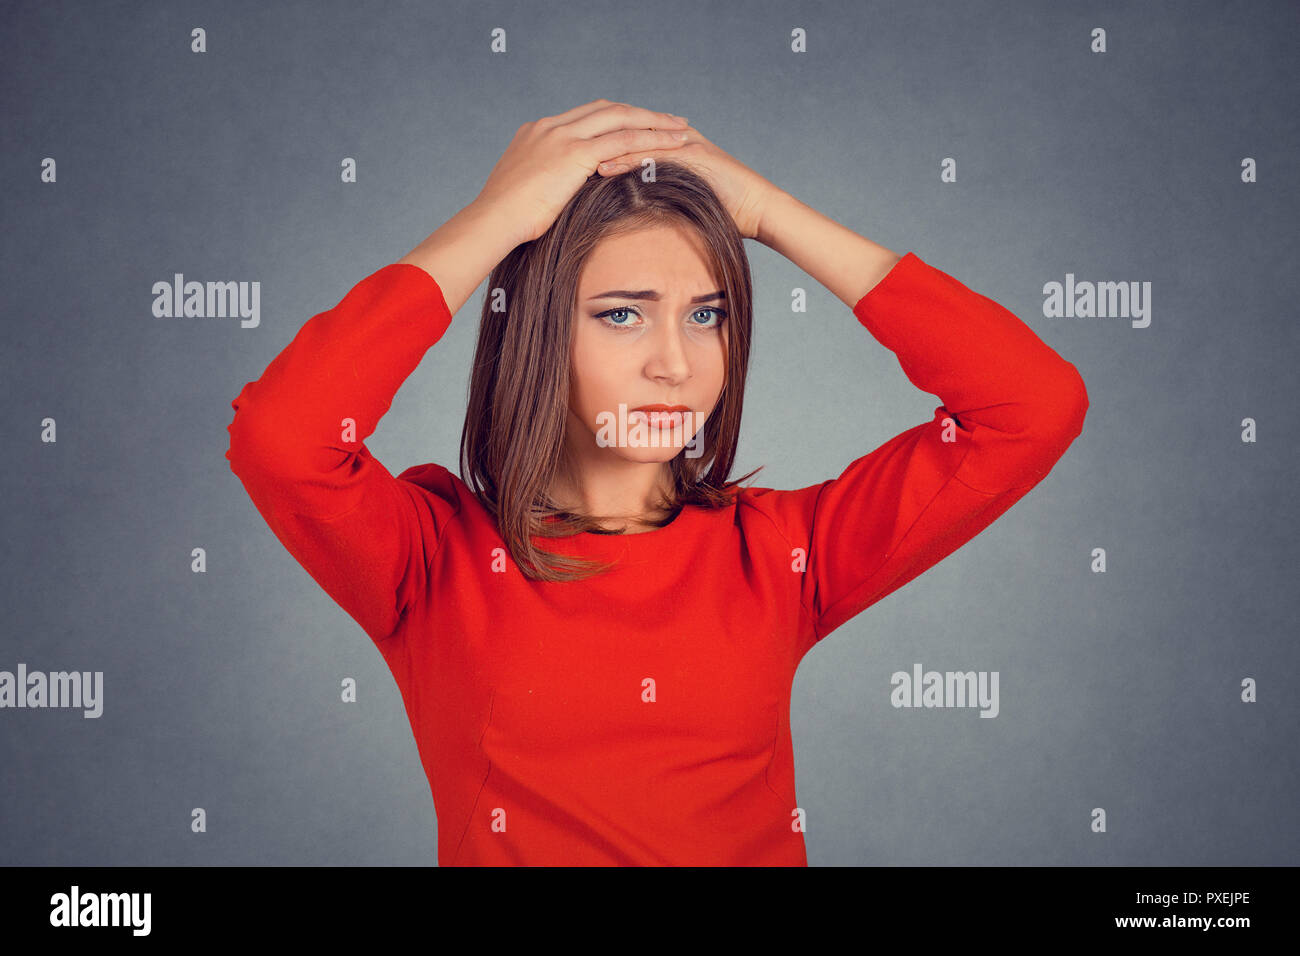 stressed out young woman with worried face expression looking - Stock Image